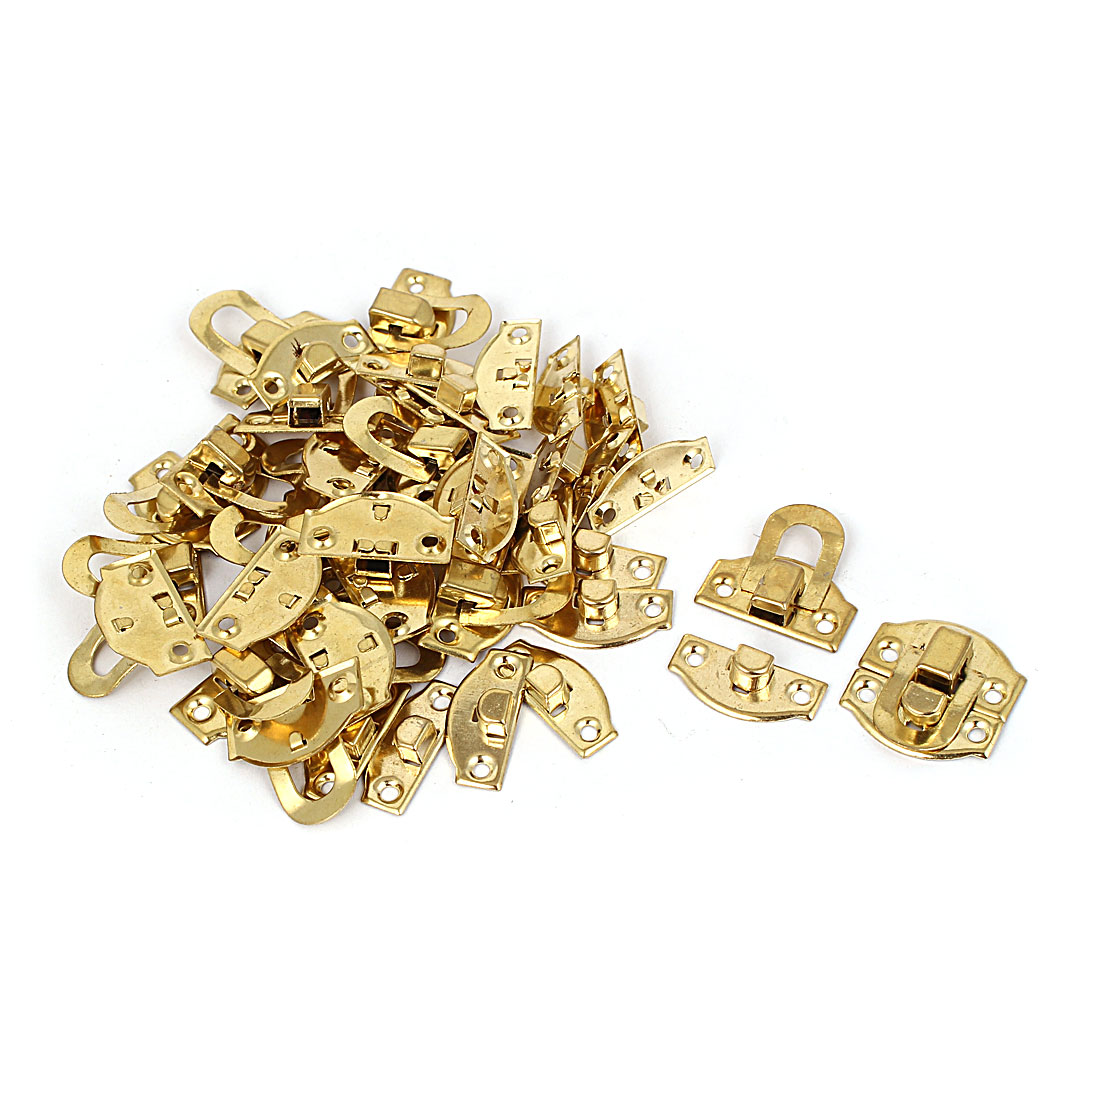 Suitcase Case Chest Box Decorative Lock Hasp Metal Toggle Latch Gold Tone 20pcs